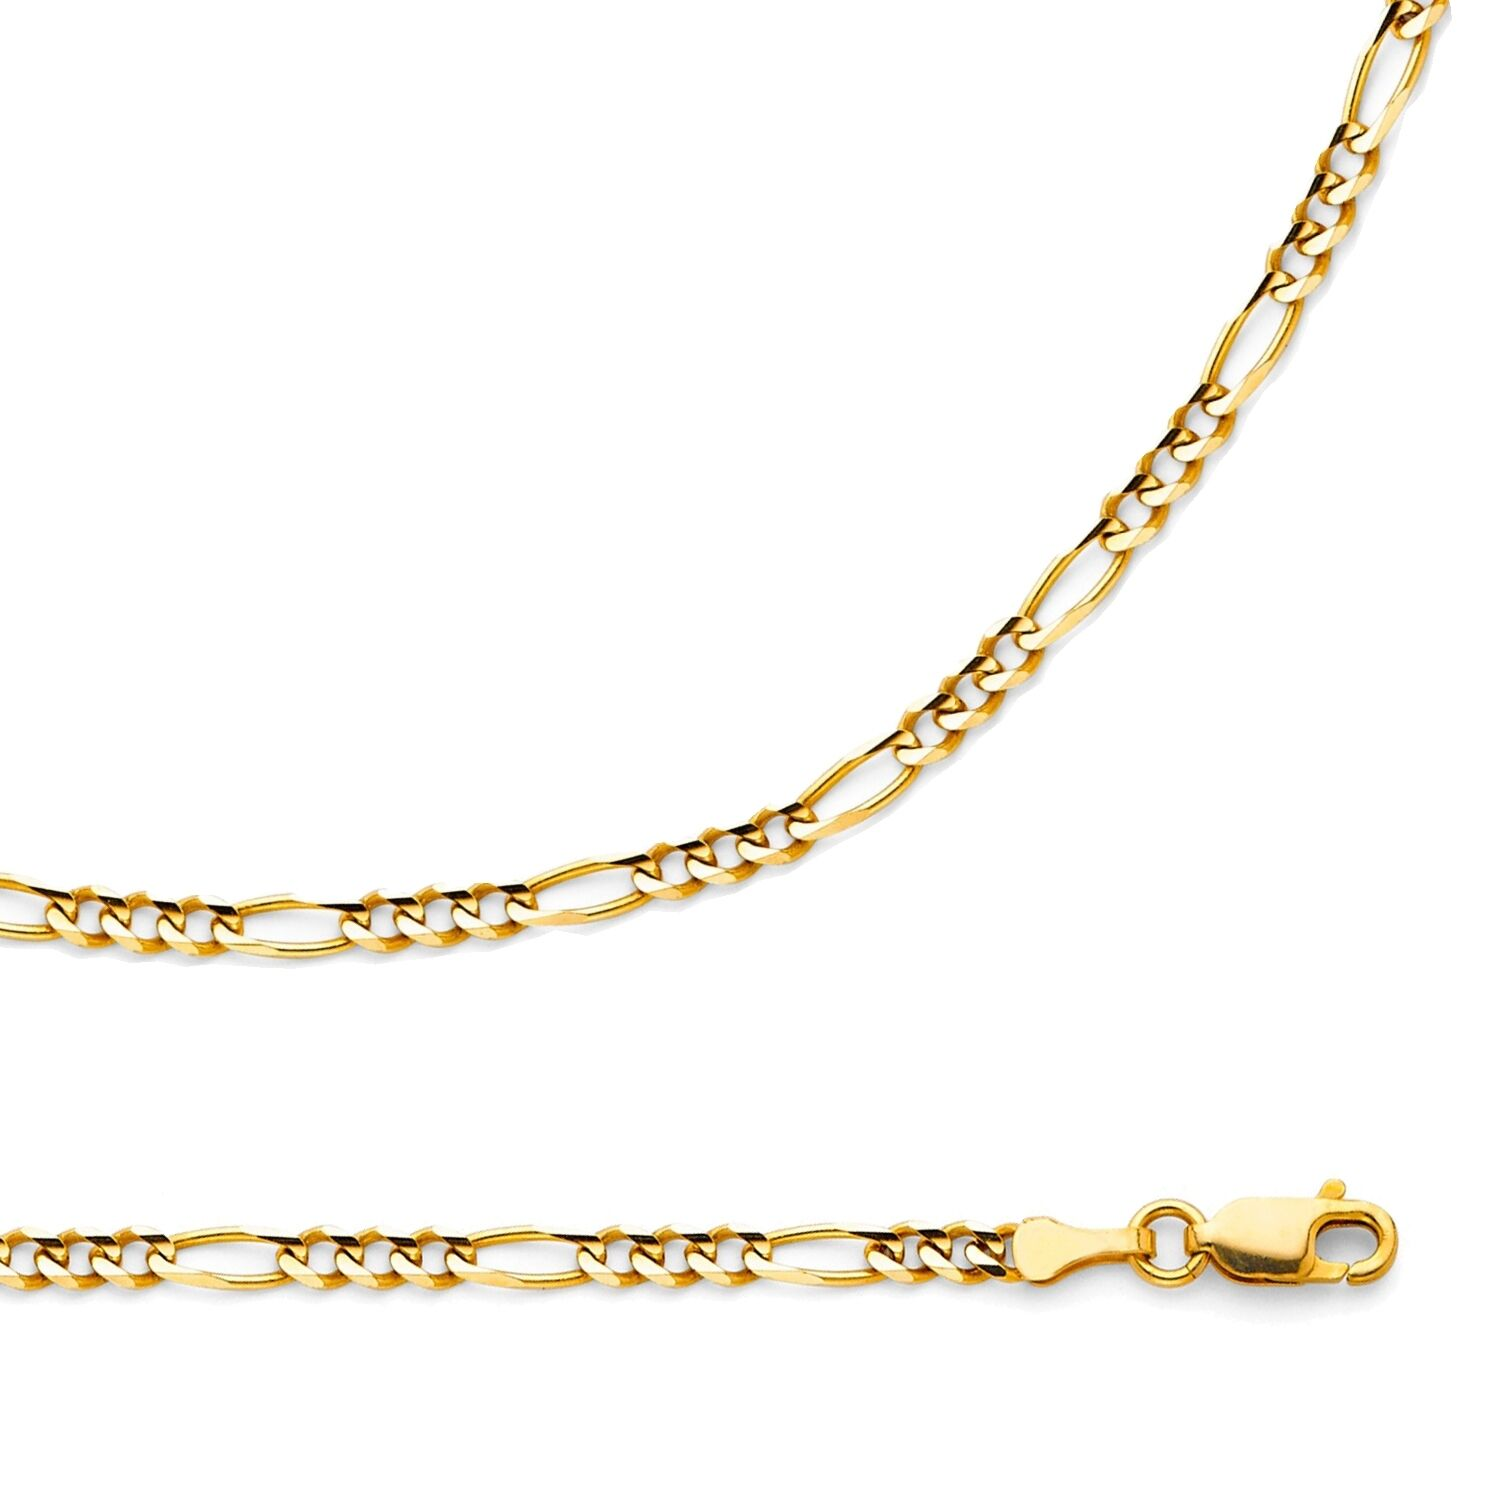 Real 10K Yellow Gold Figaro Style Chain 3.1 mm Necklace 18 Inch For Mens Womens